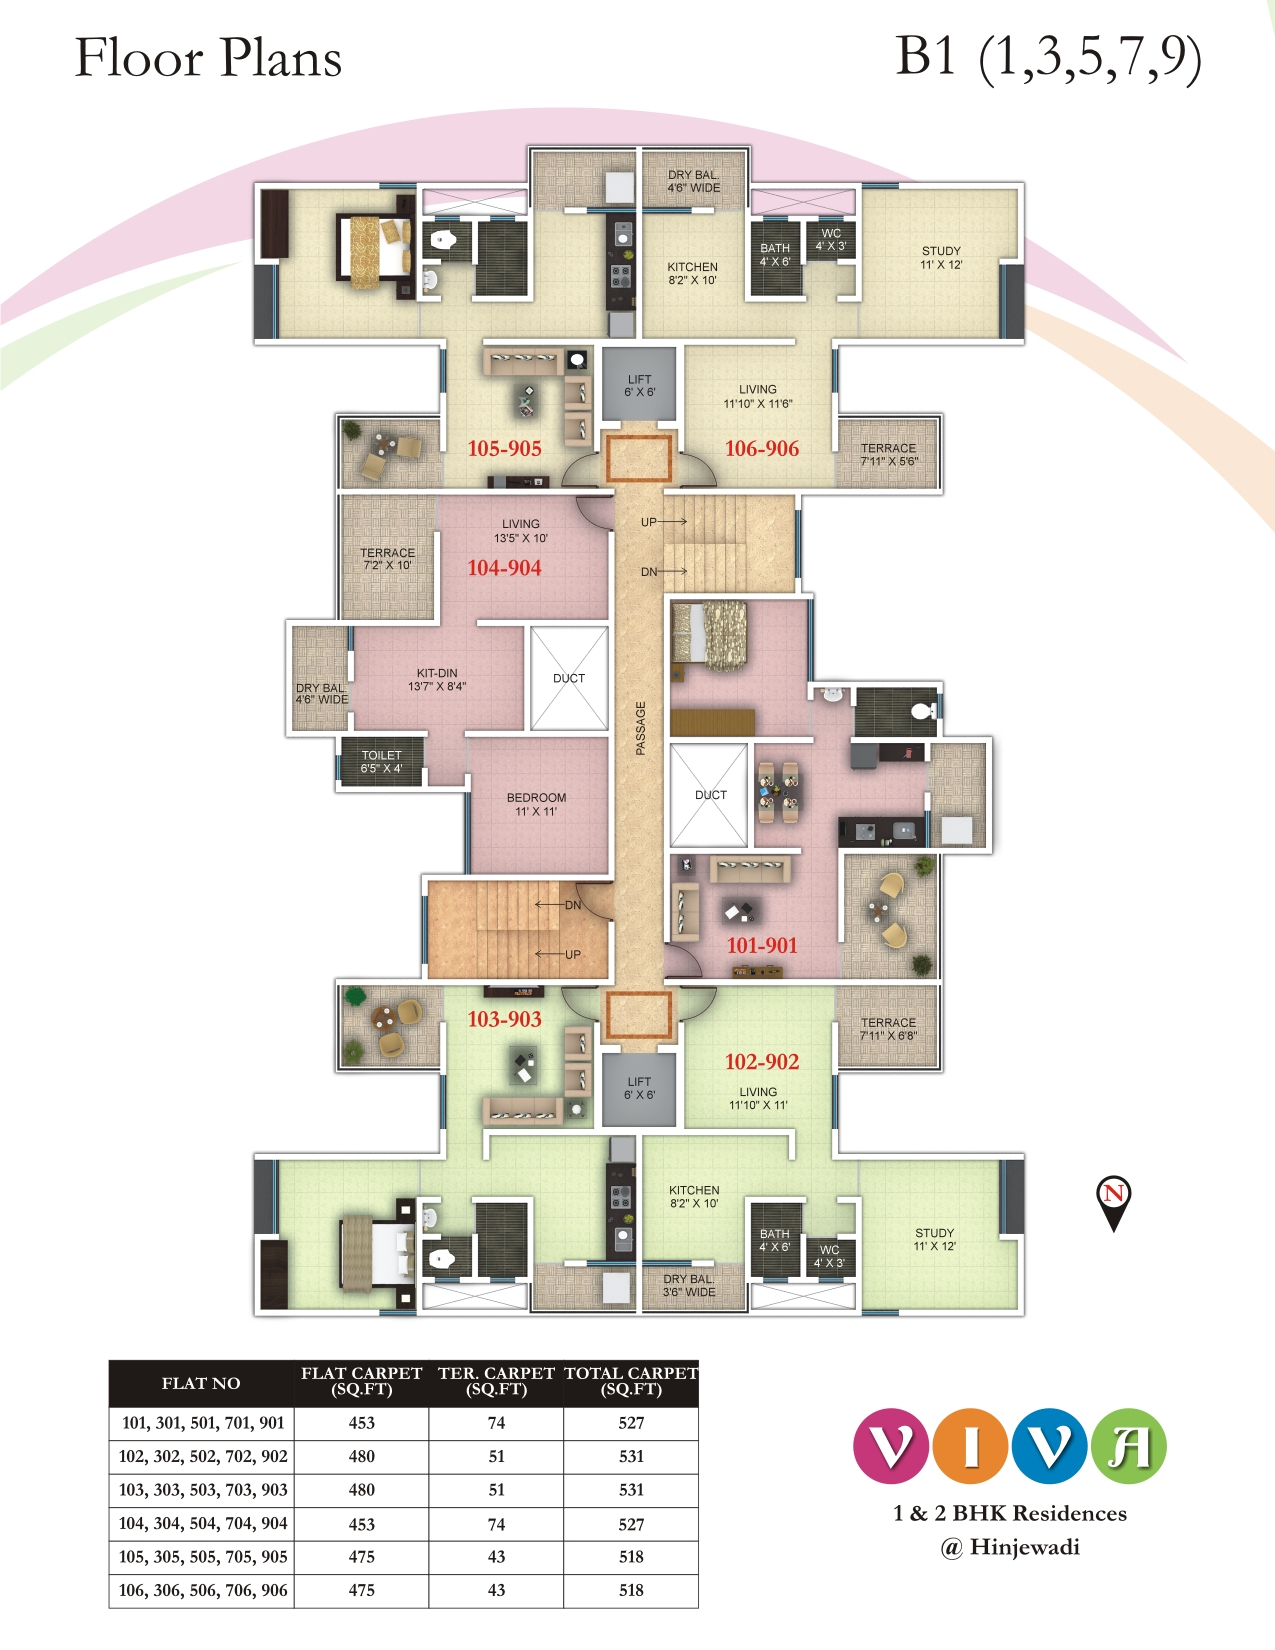 1 2 bhk luxury apartments in hinjewadi 2 bhk flats for for 1 bhk floor plans india